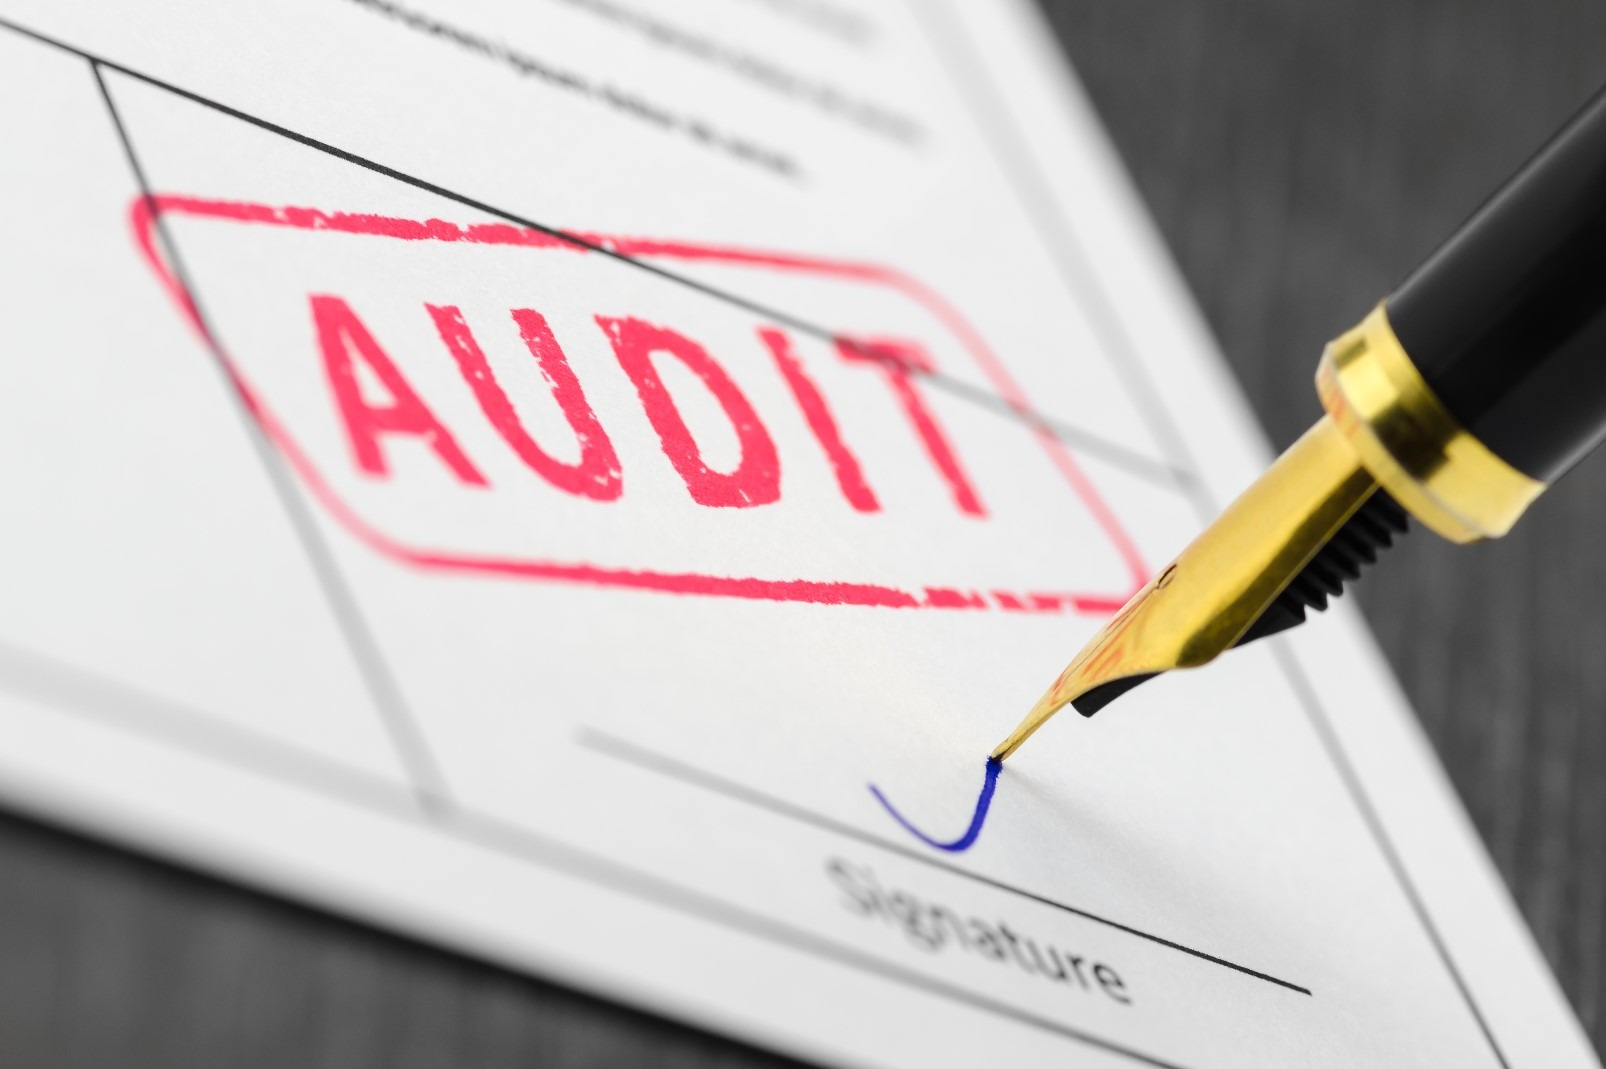 Myths that we often hear about auditing